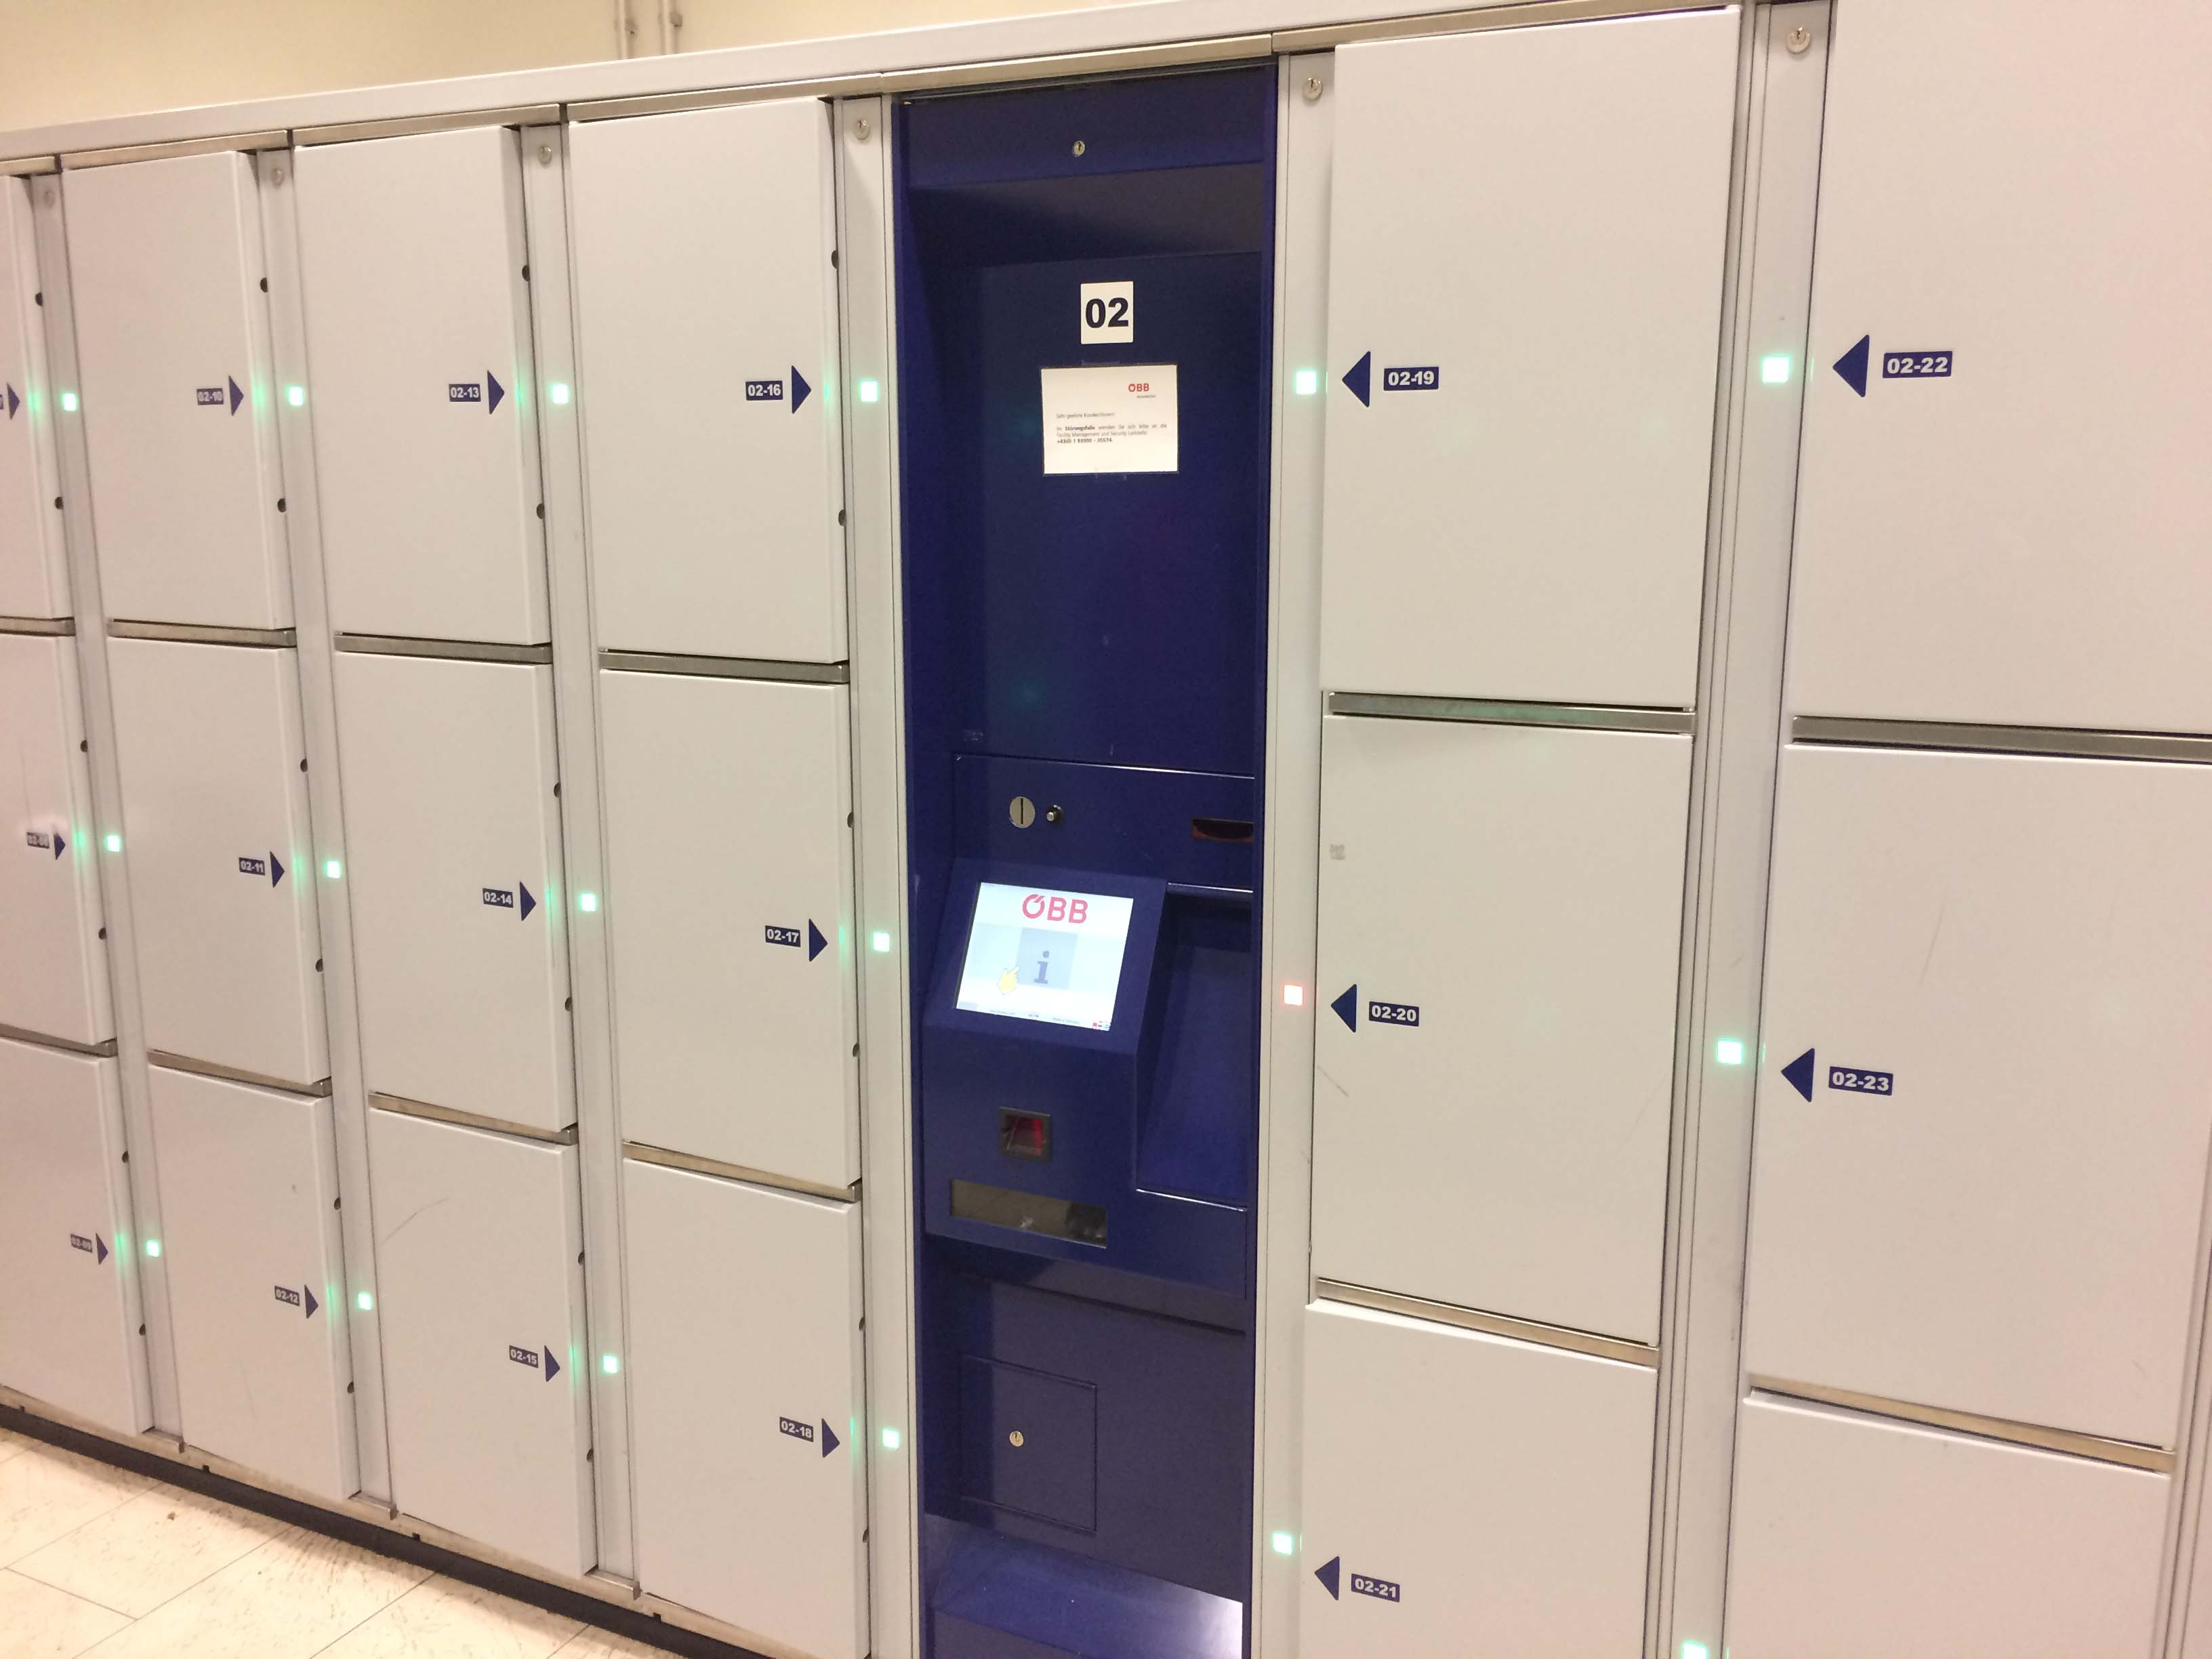 Smart lockers Locksafe5 – keyless lockers for train stations, airports and other transport operators.